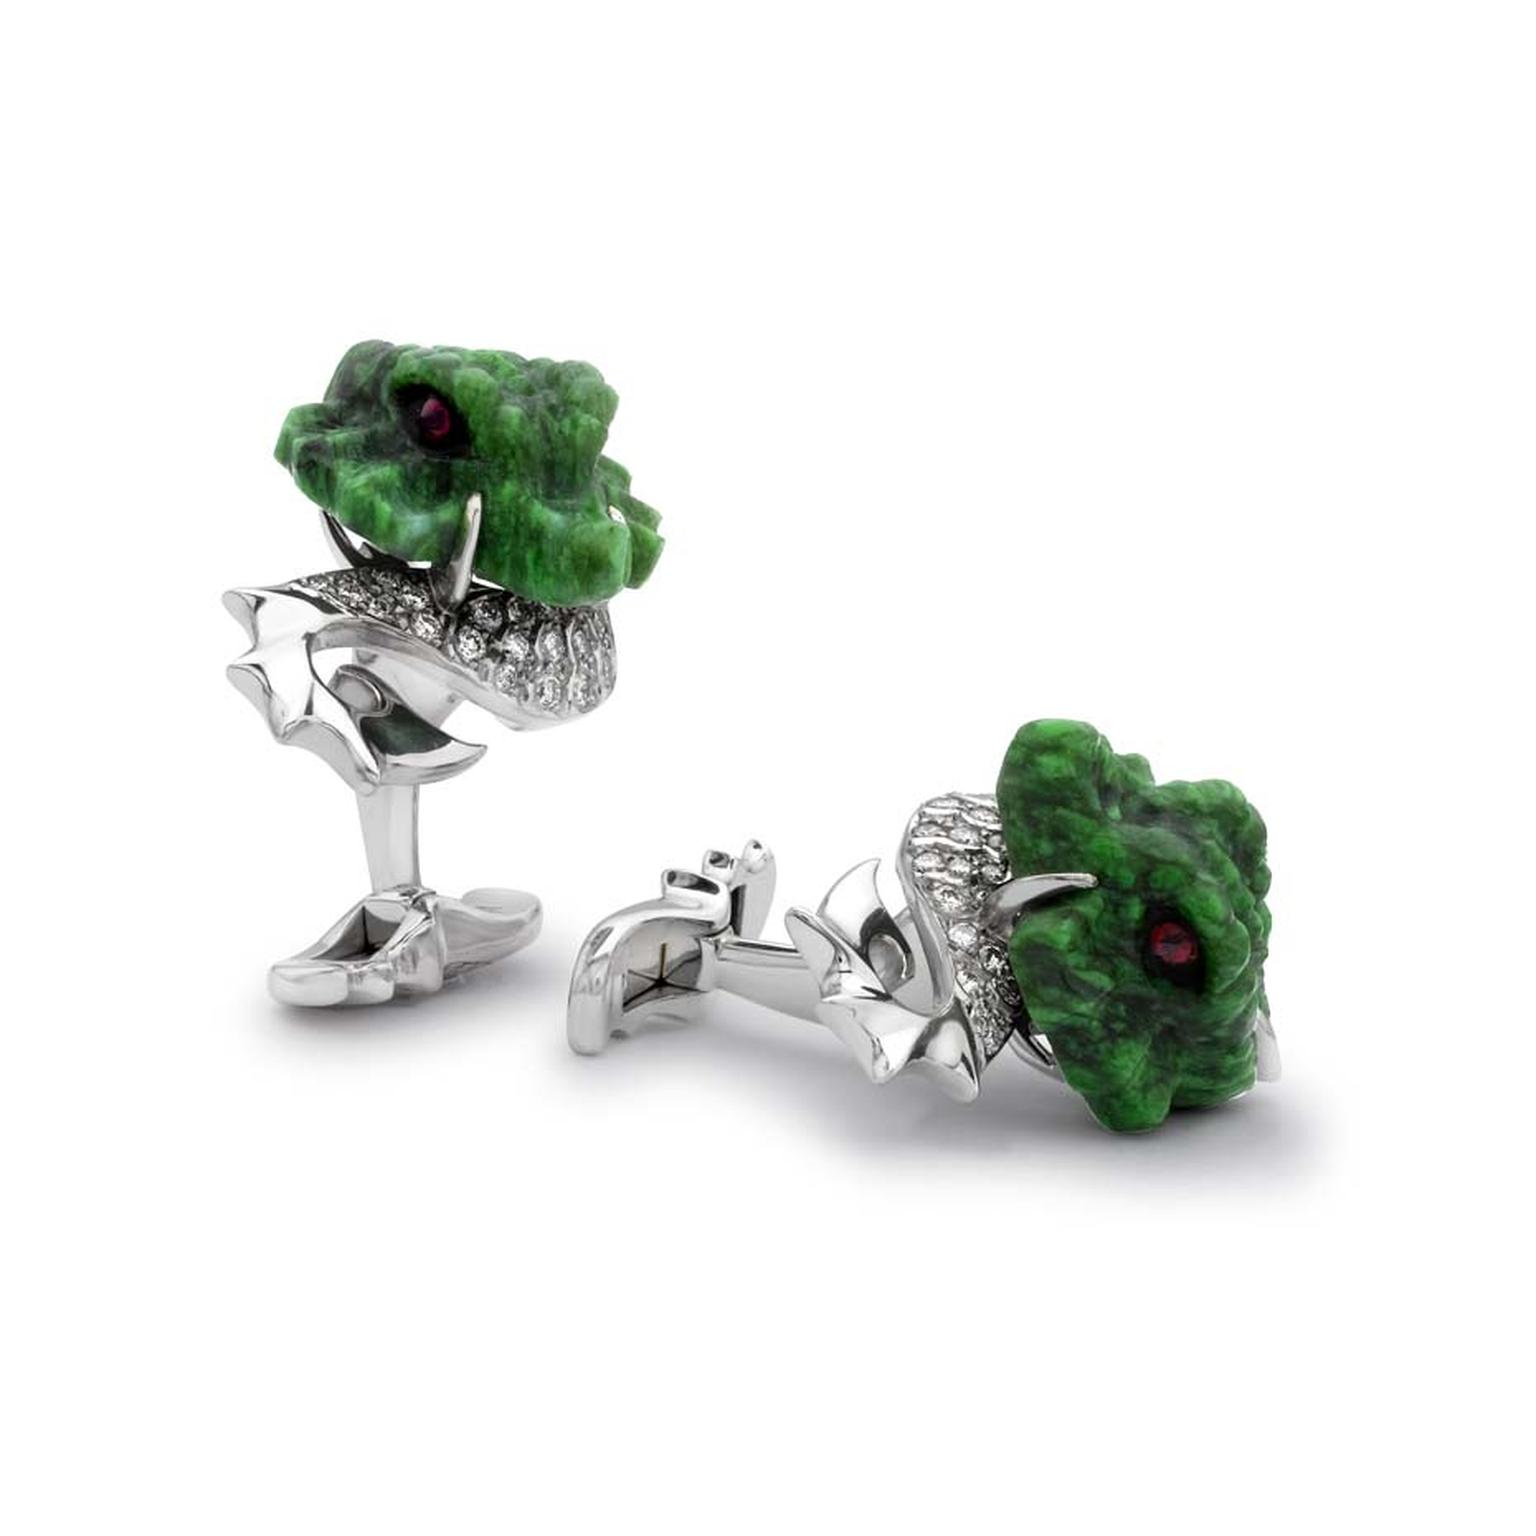 David Marshall Dragon Burma jade and diamond cufflinks (£6,730).